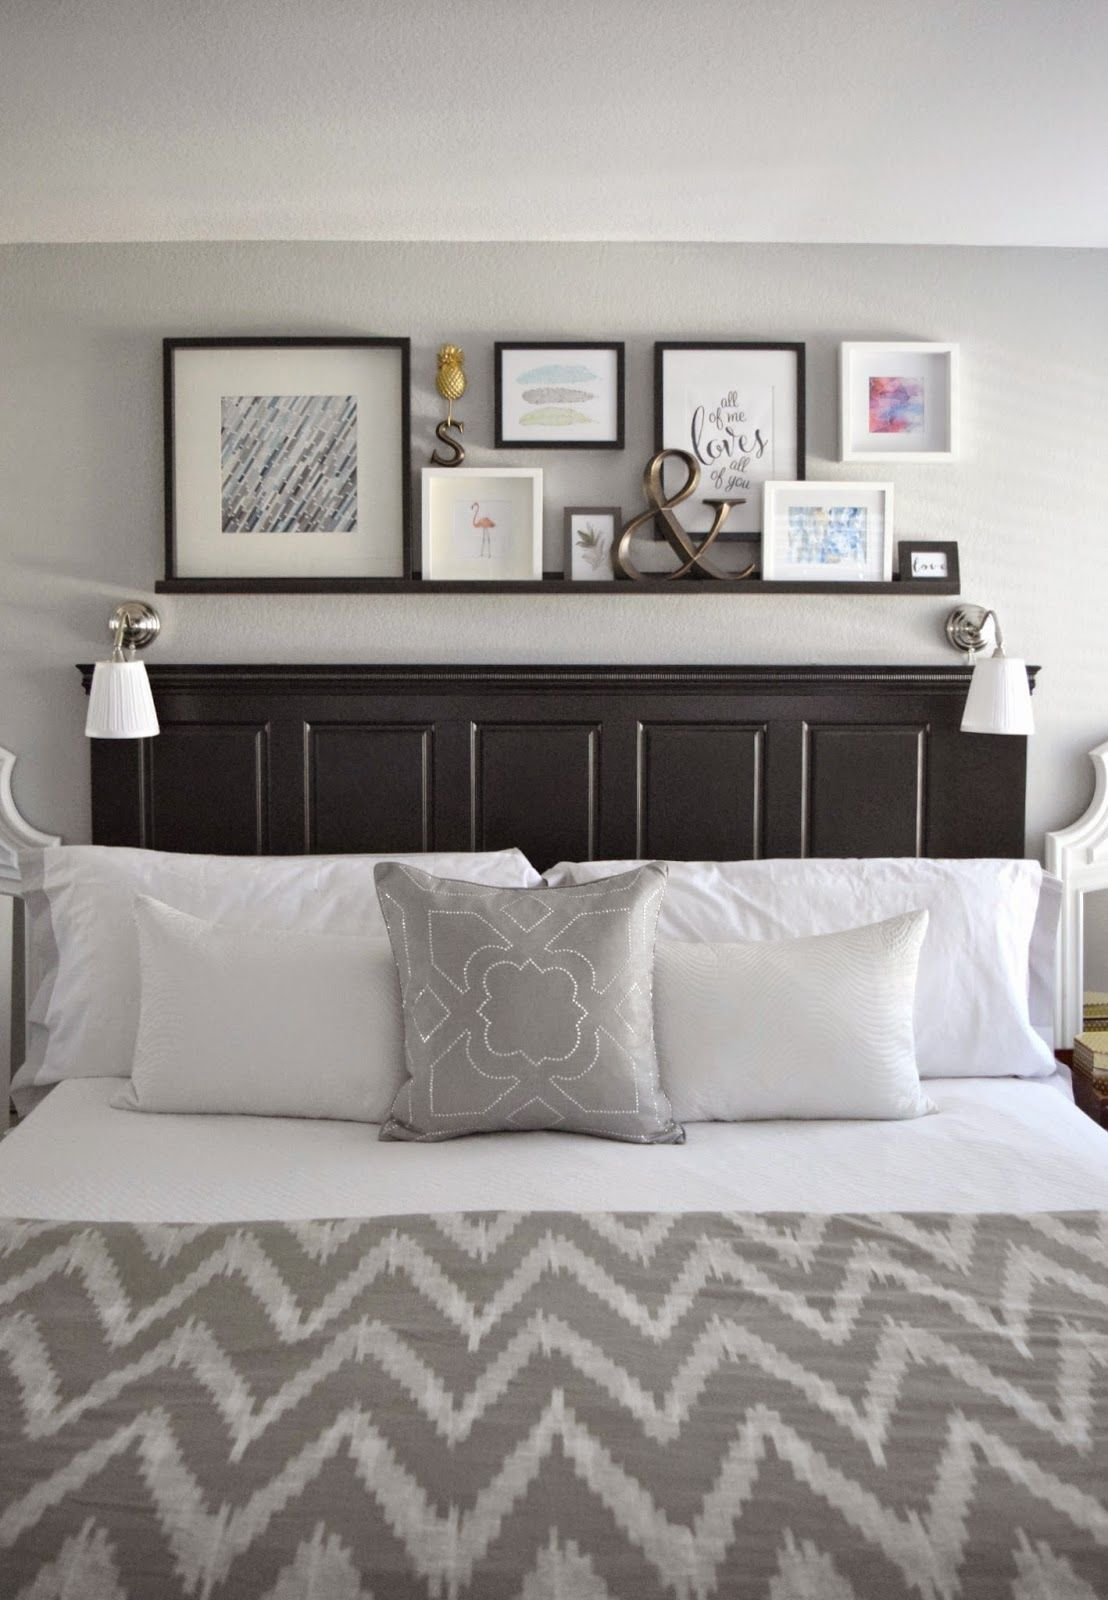 Made2make Home Tour Above Headboard Decor Bedroom Wall Bed Black